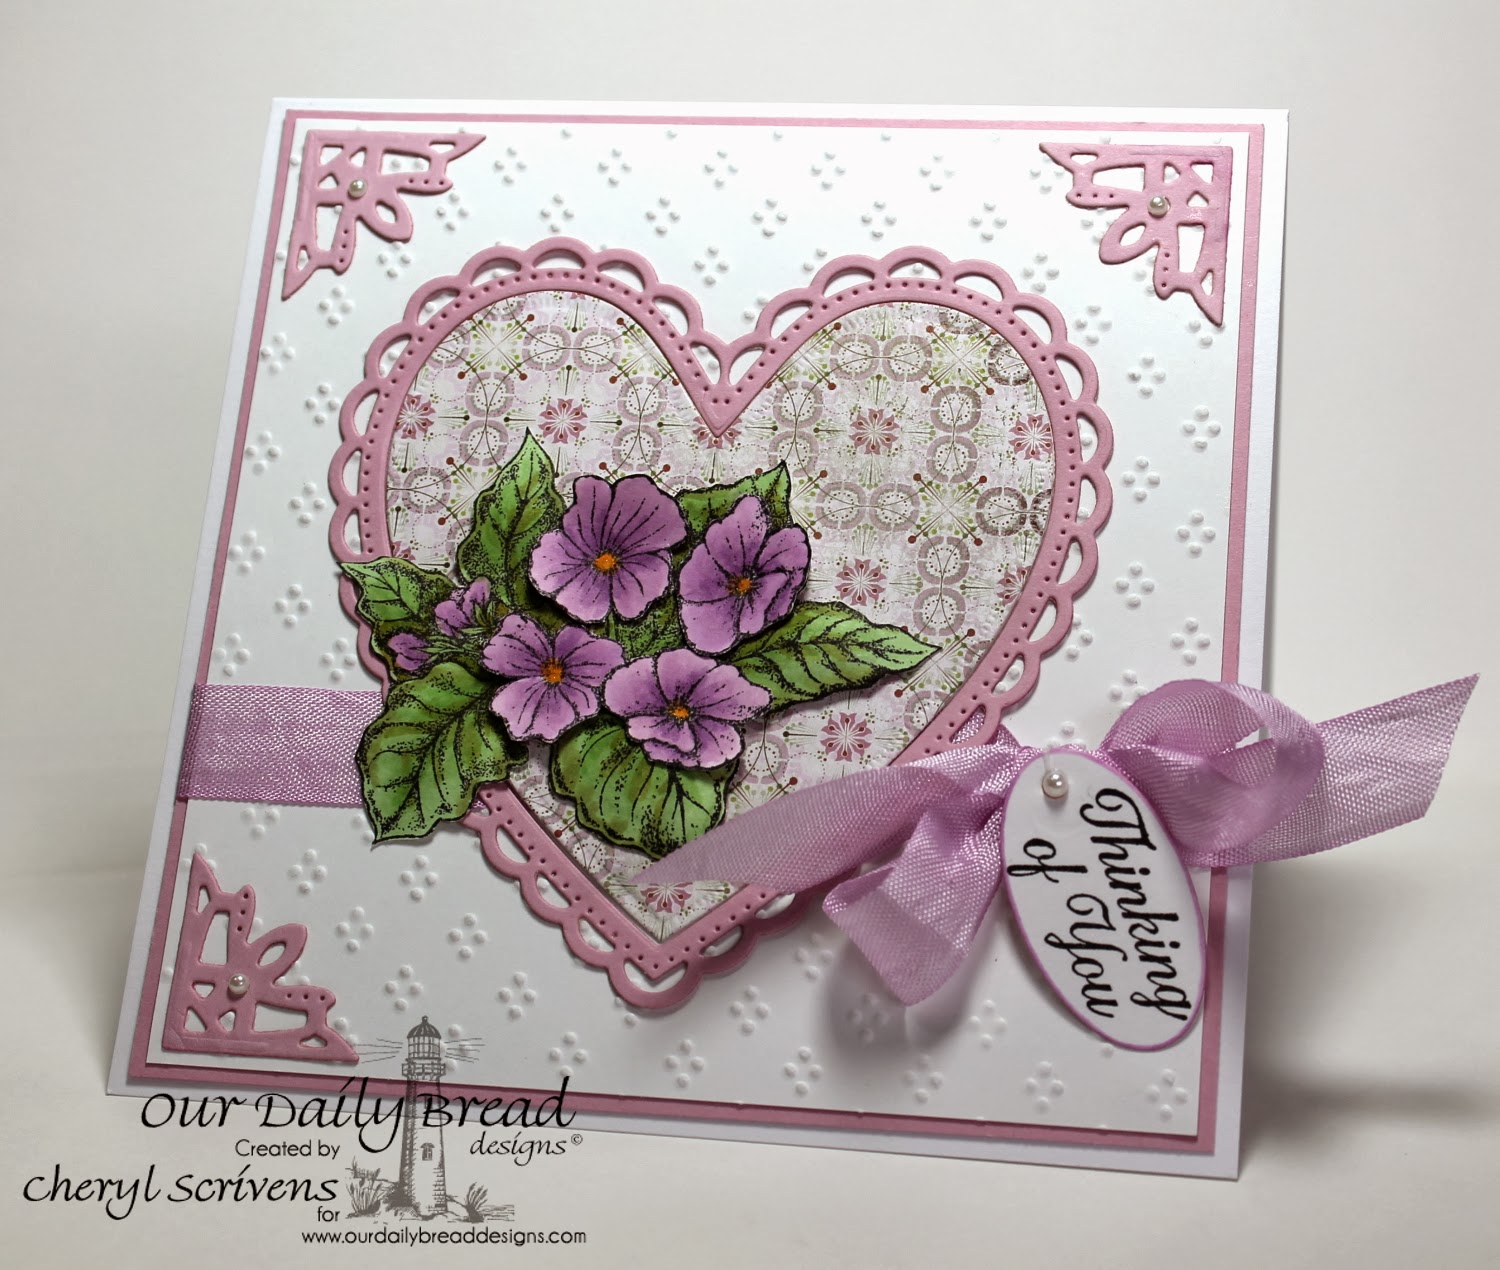 Our Daily Bread Designs, Violet, Ornate Borders Sentiments, ODBD Custom Ornate Heart dies, ODBD Custom Ornate Borders and Flower dies, CherylQuilts, Shining the Light Challenge, Designed by Cheryl Scrivens